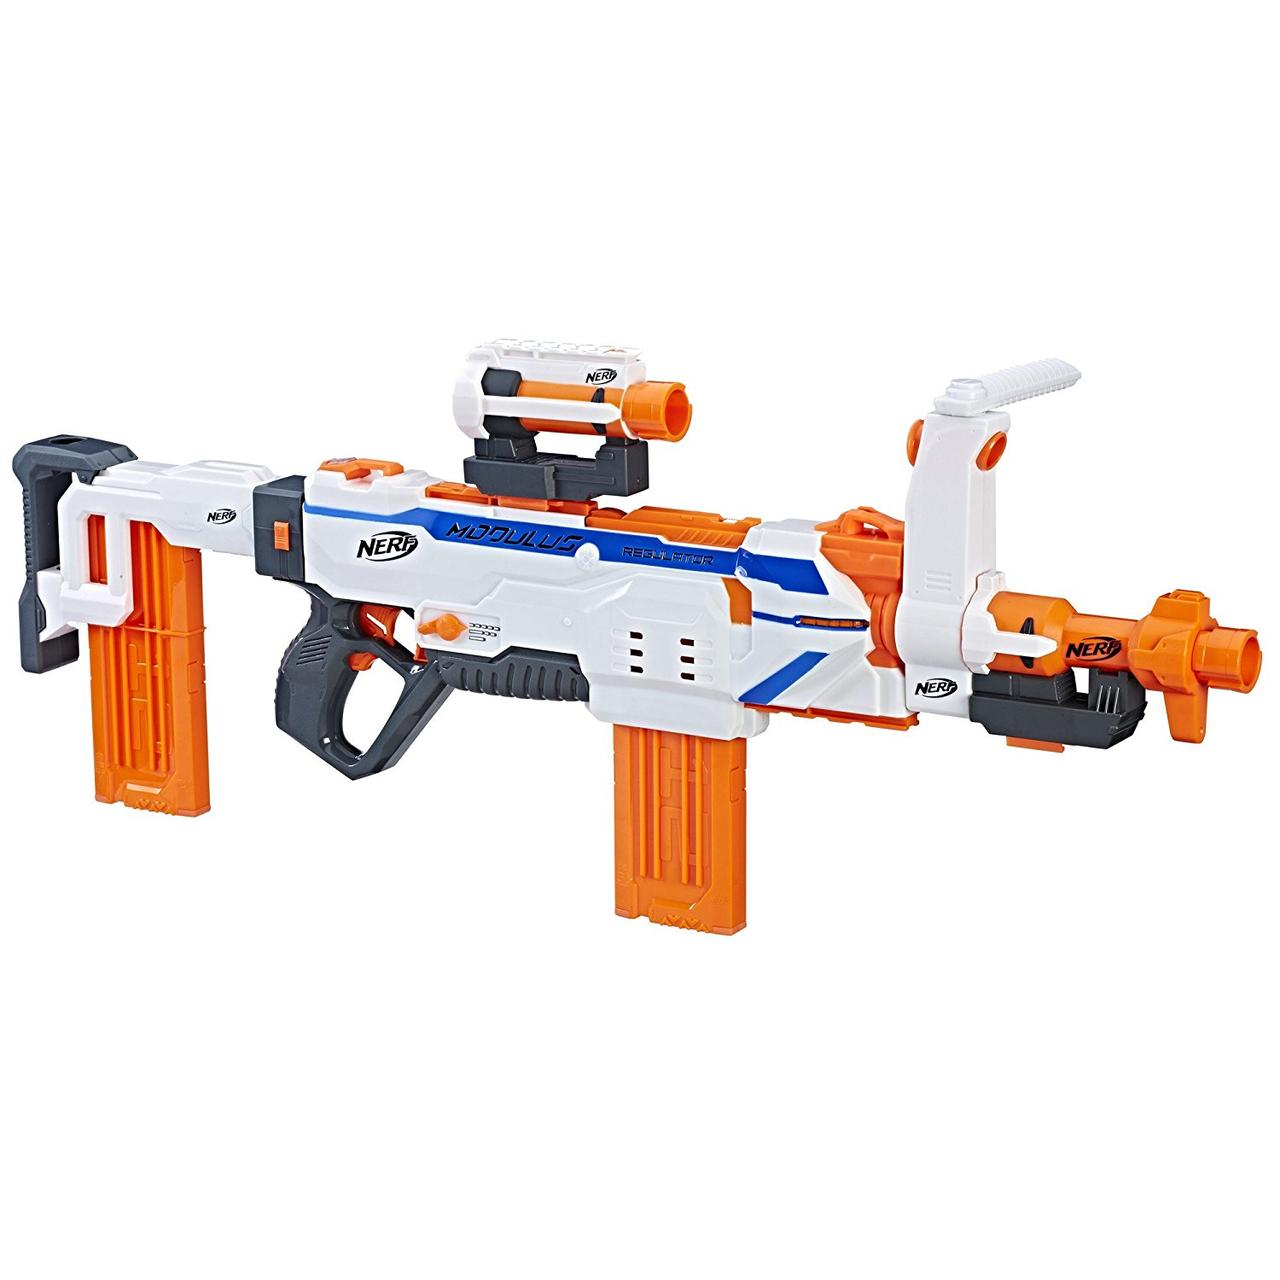 Бластер Нерф Модулус Регулятор NERF N-Strike Modulus Blaster Regulator